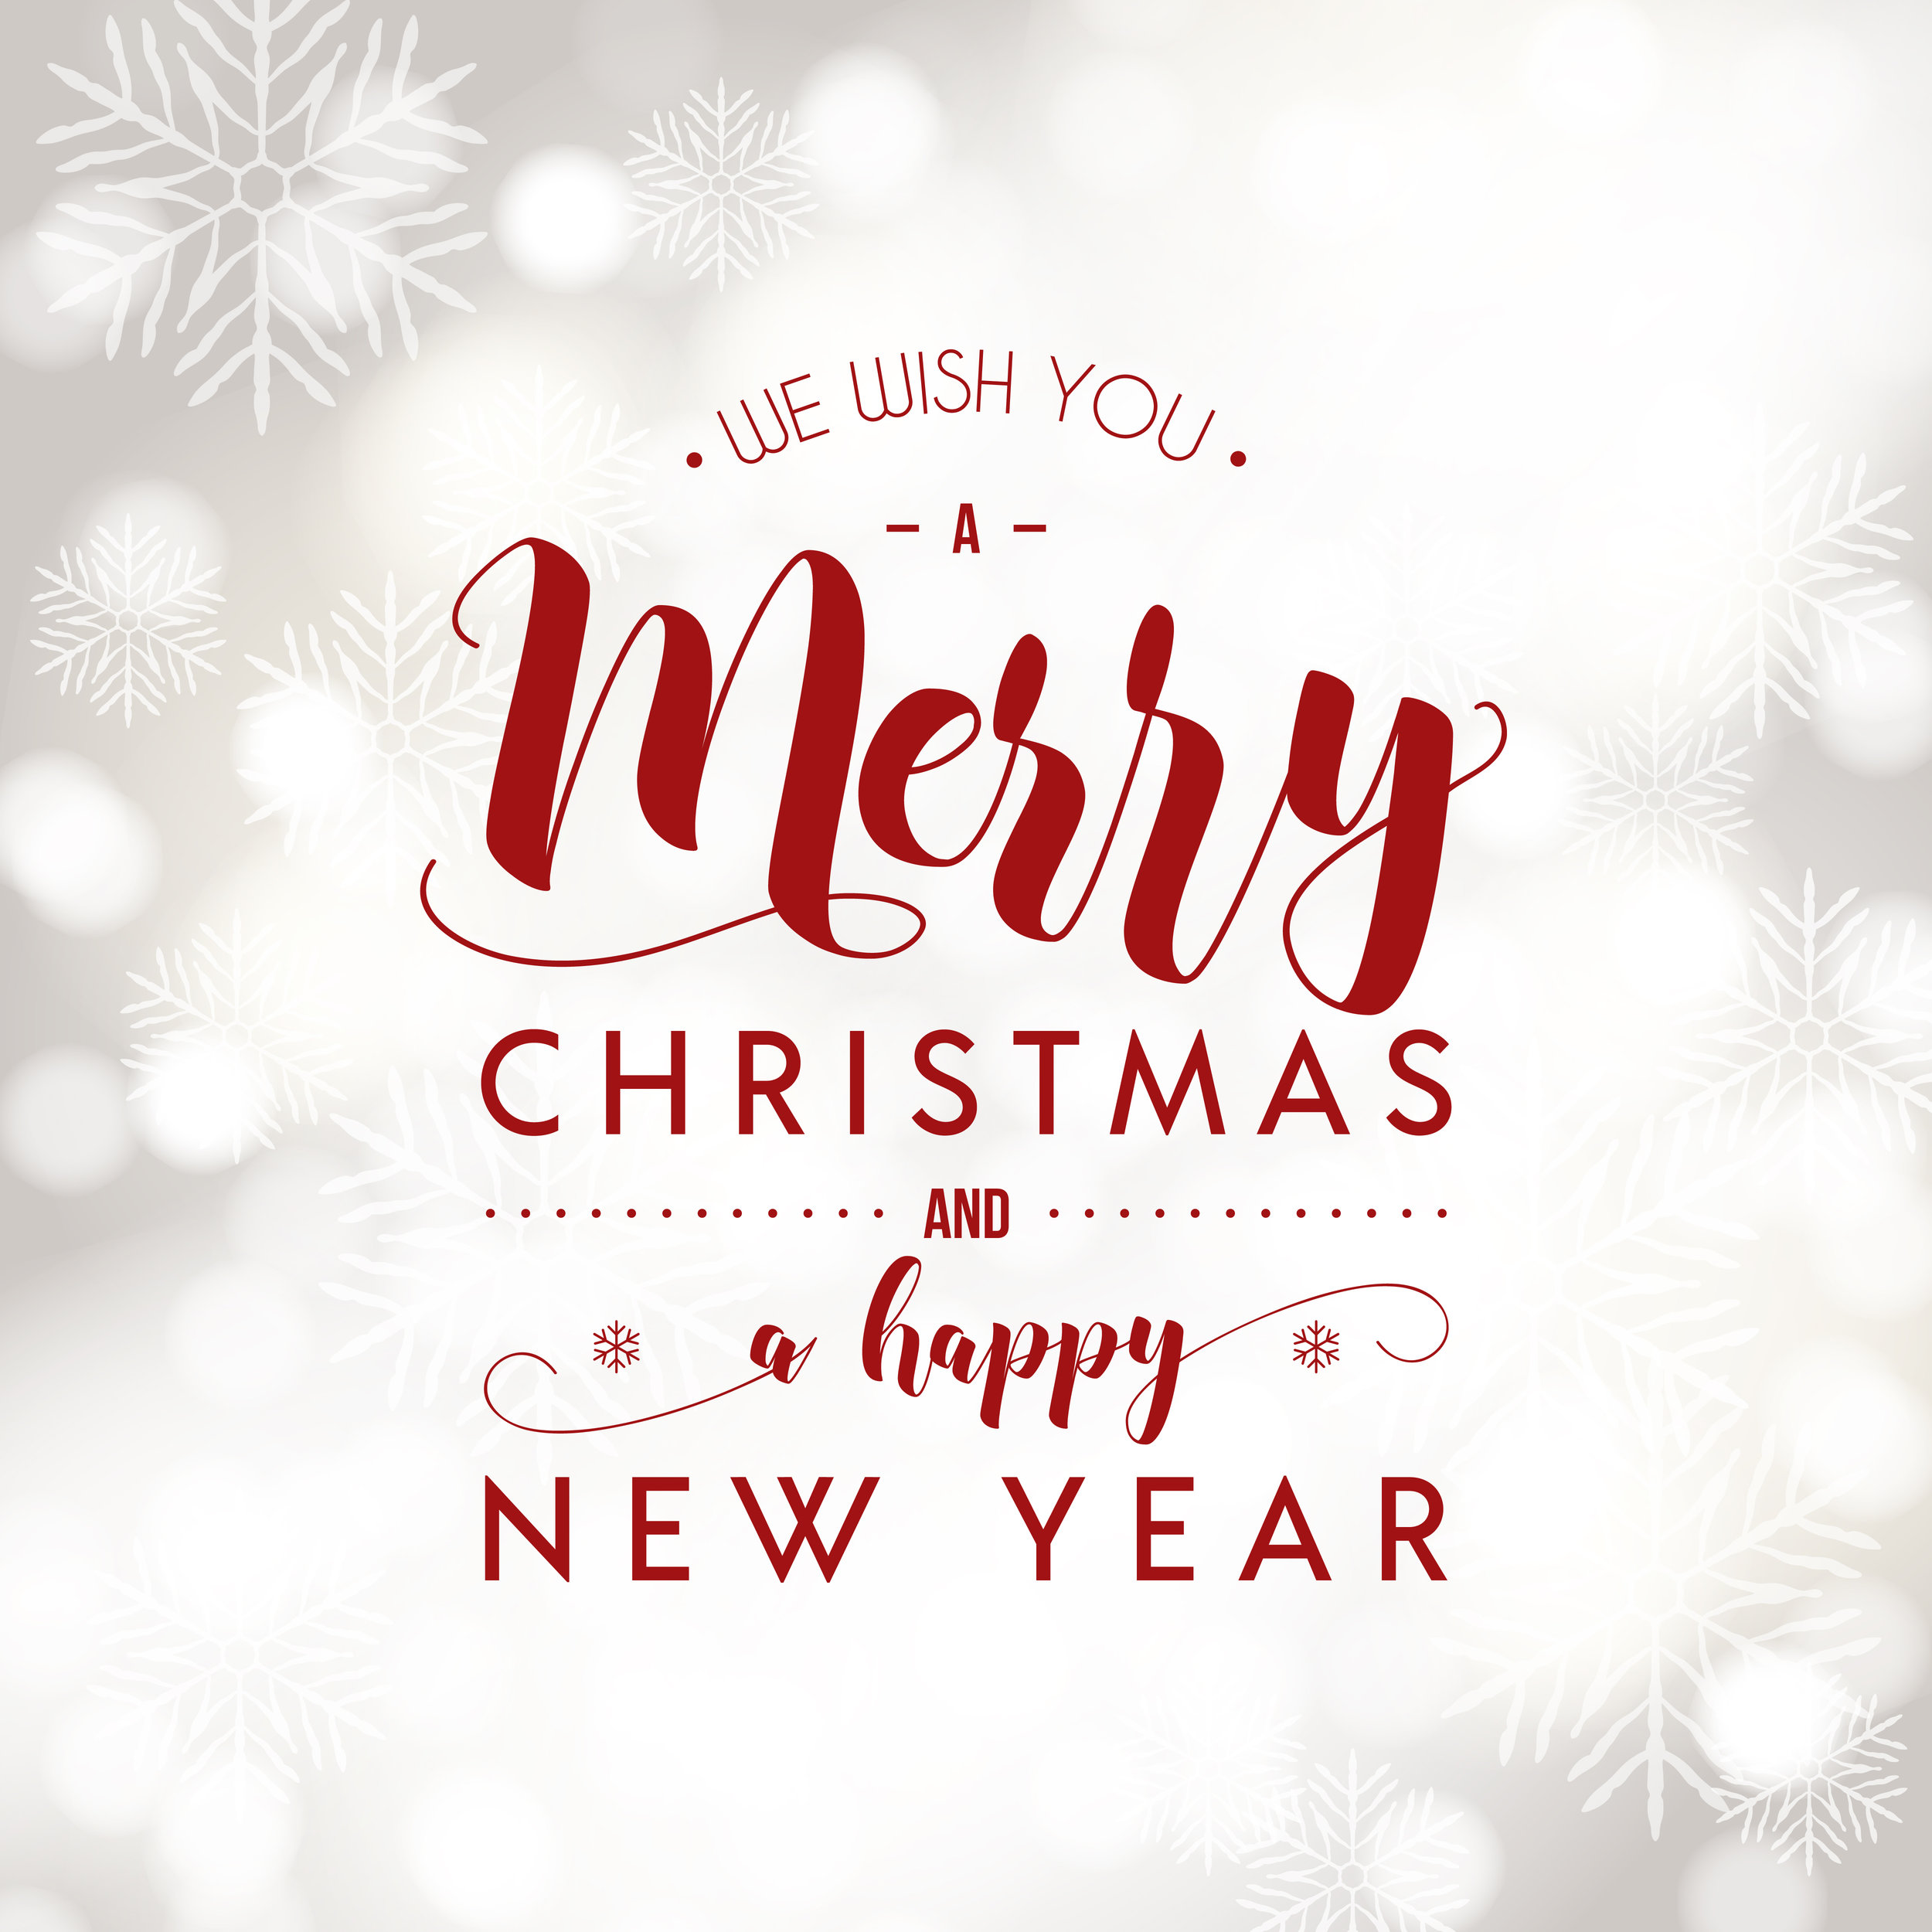 Embrow Beauty wishes you Merry Christmas!